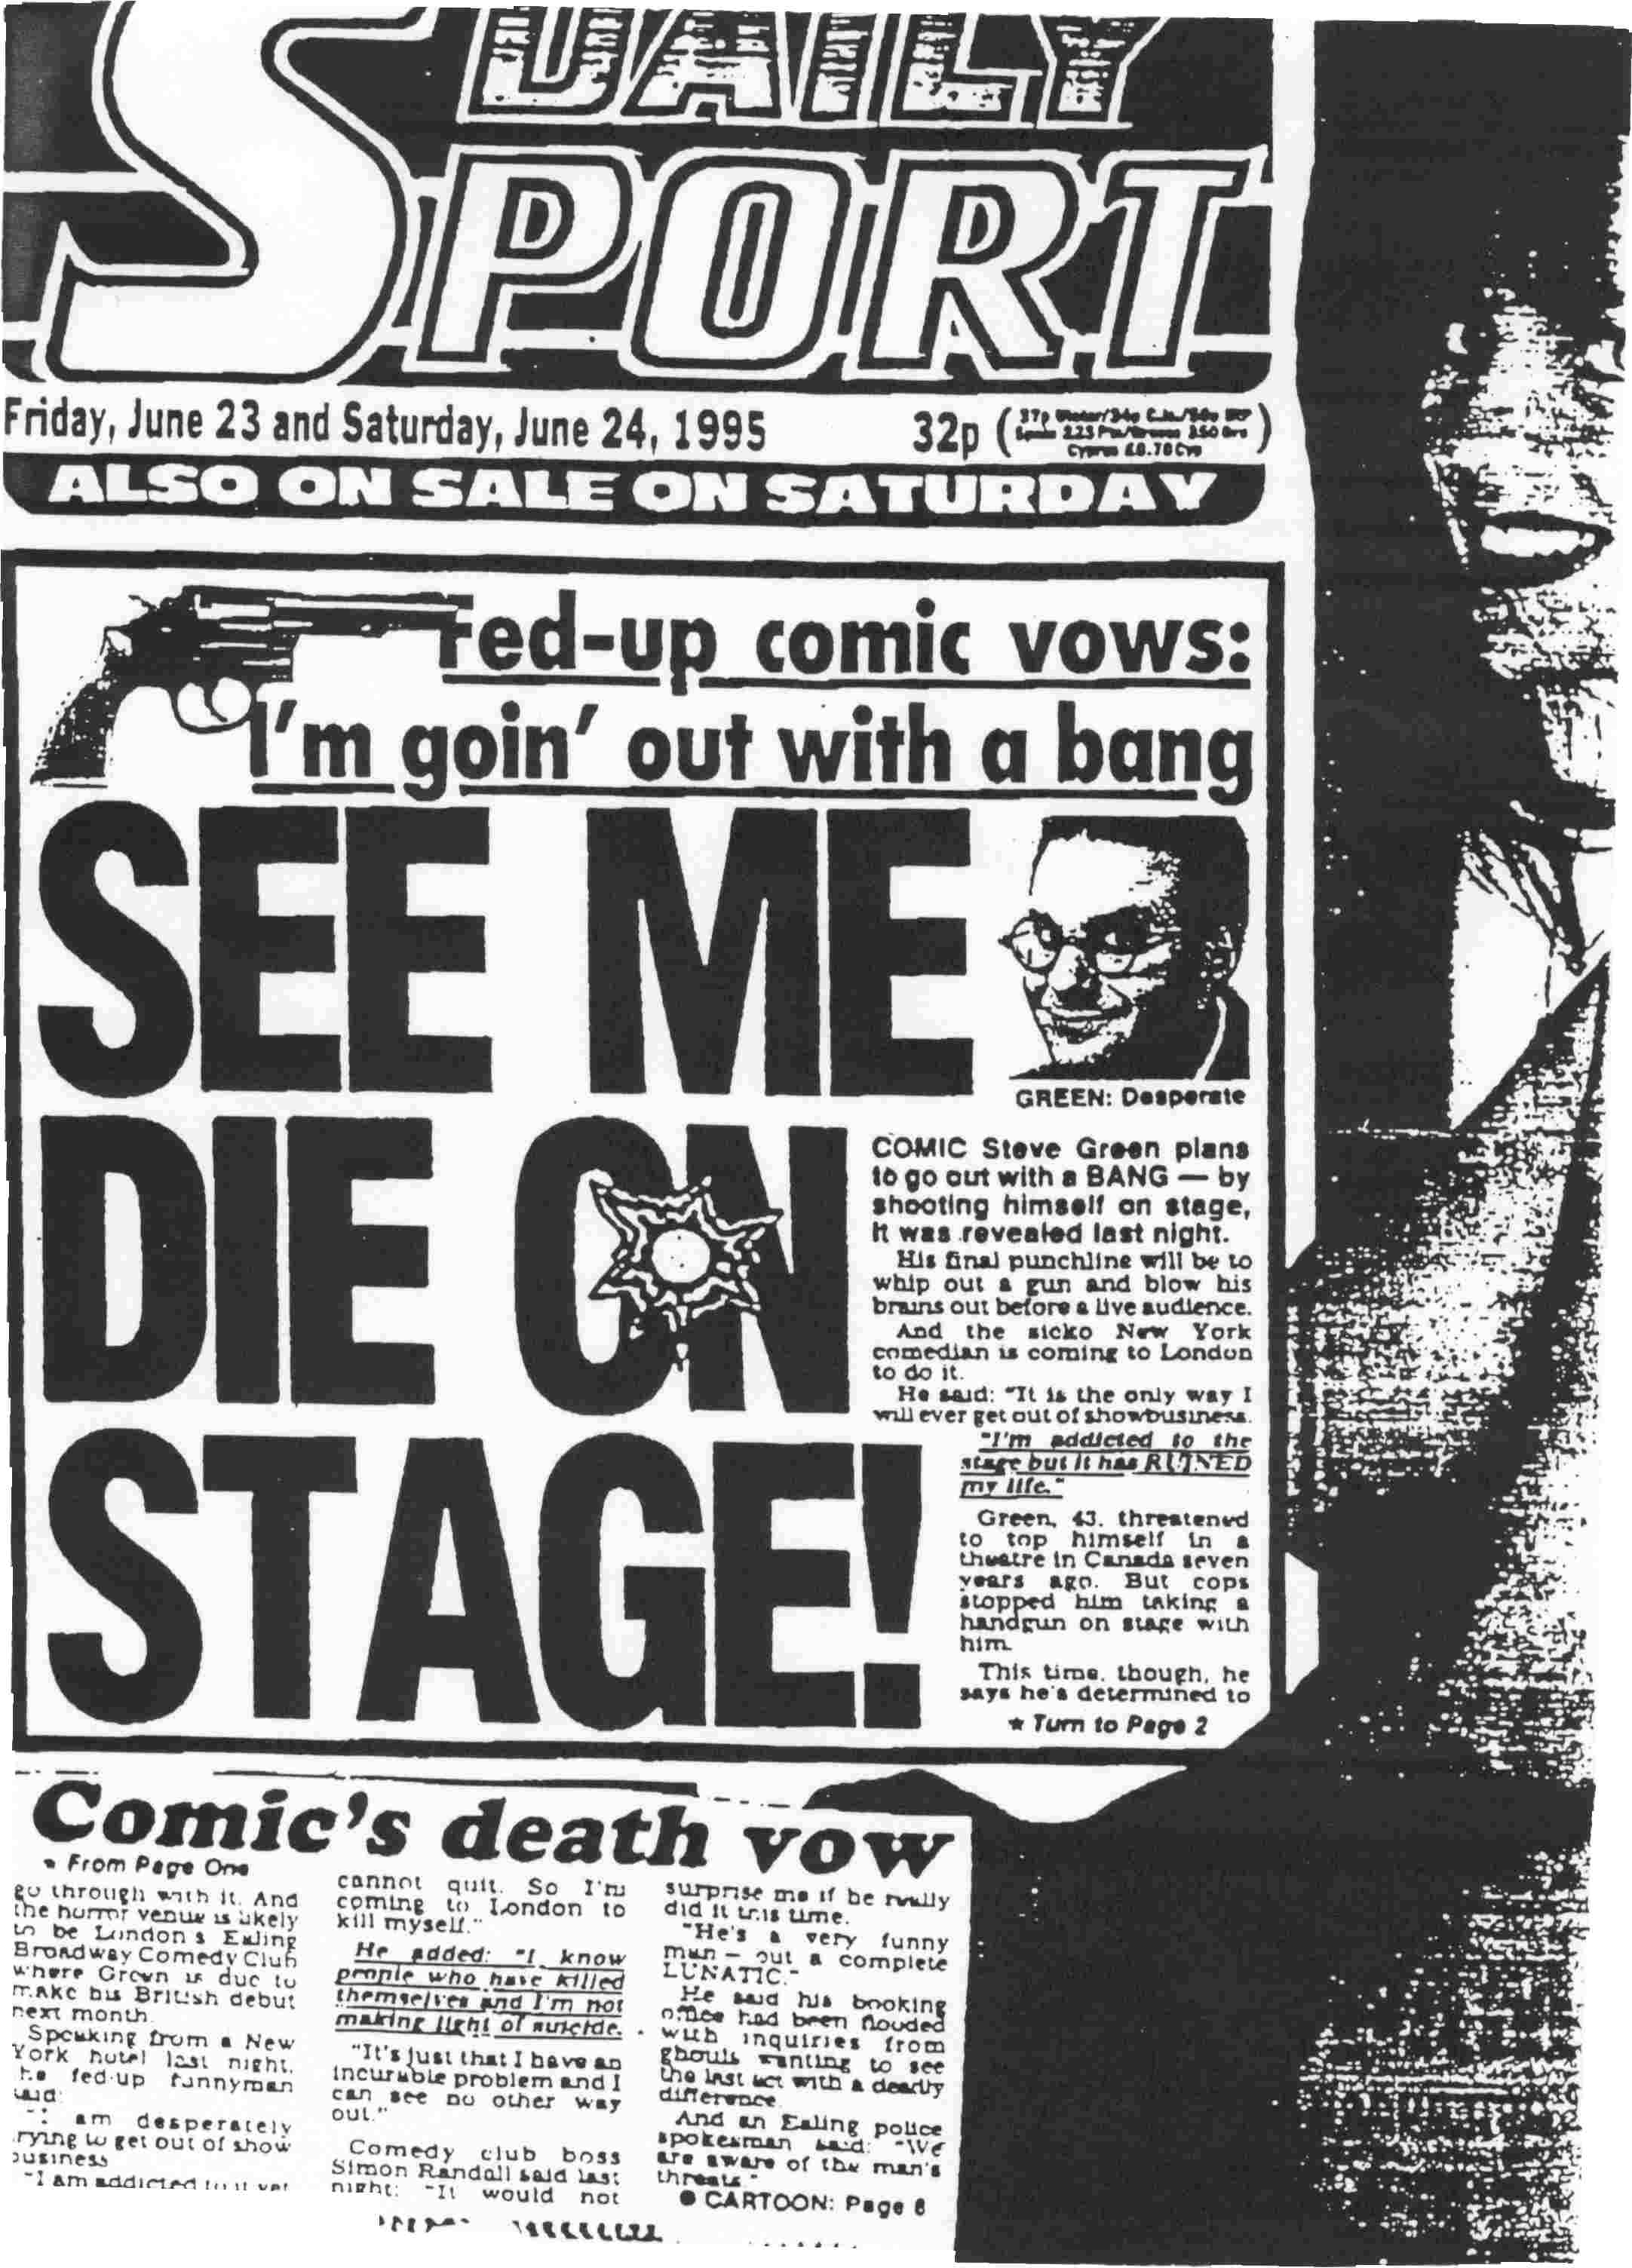 This was most bizarre. Somehow, I made the front page of a British tabloid, who got wind I was doing my farewell performance (another one) at the Ha Bloody Ha comedy club in Ealing, London. The police actually showed up. And laughed.